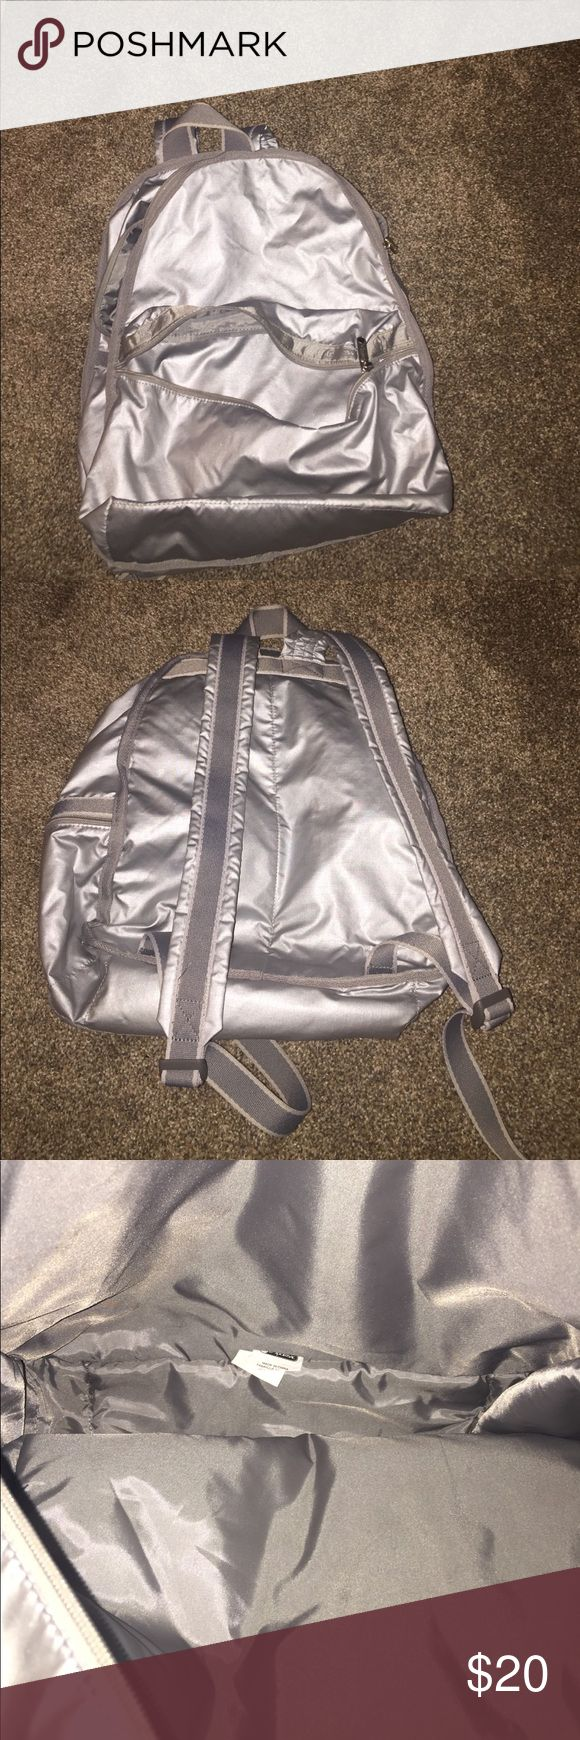 Silver LeSportsac Backpack Silver backpack. Great for kids. Machine washable. Lesportsac Bags Backpacks